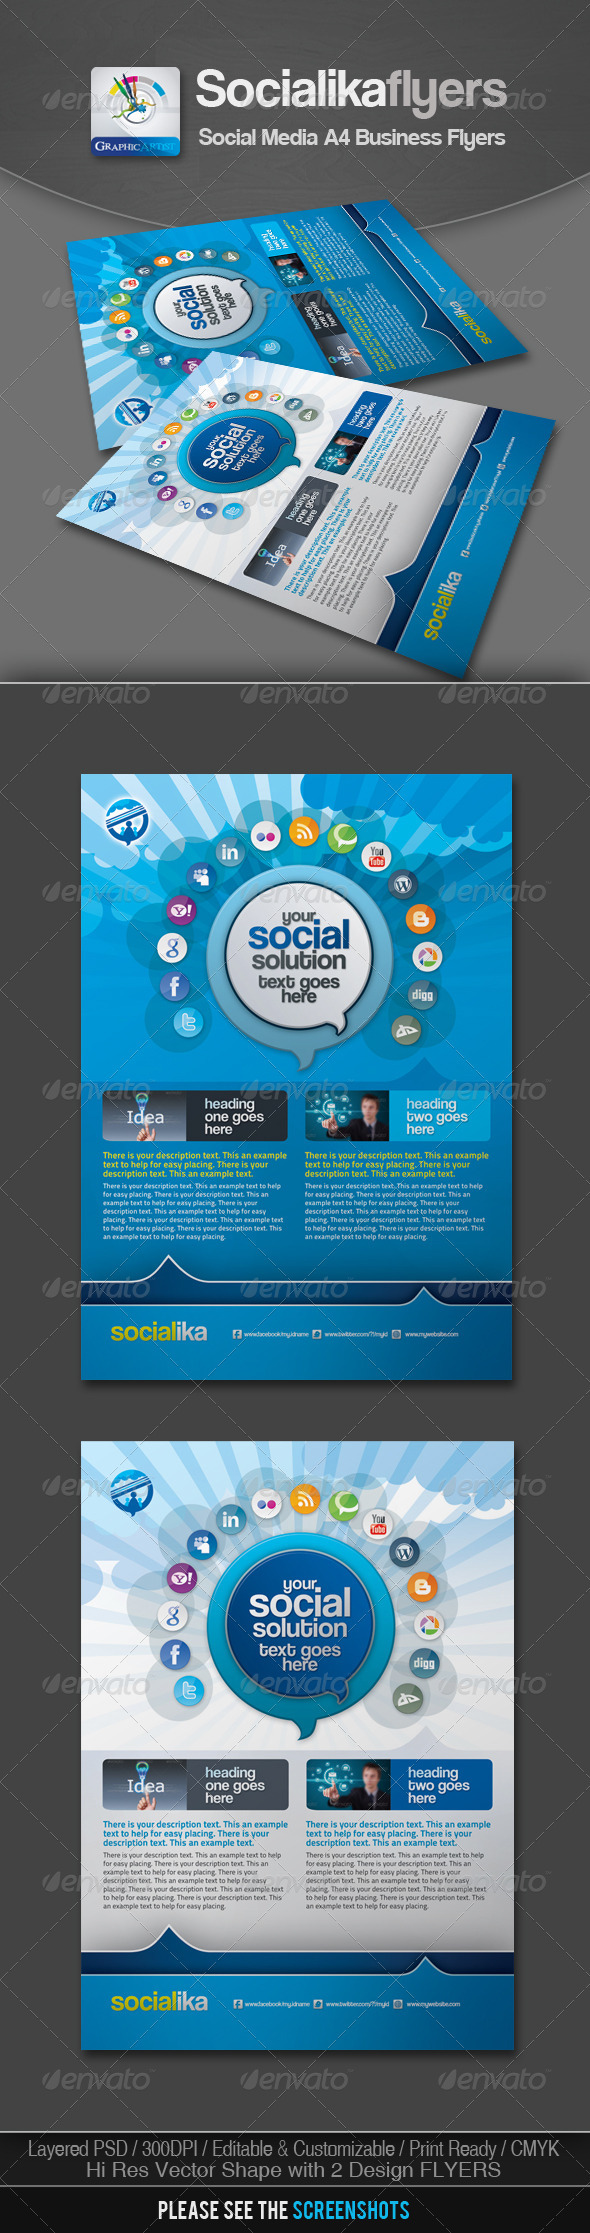 Socialika Social Media Business Flyers - Corporate Flyers